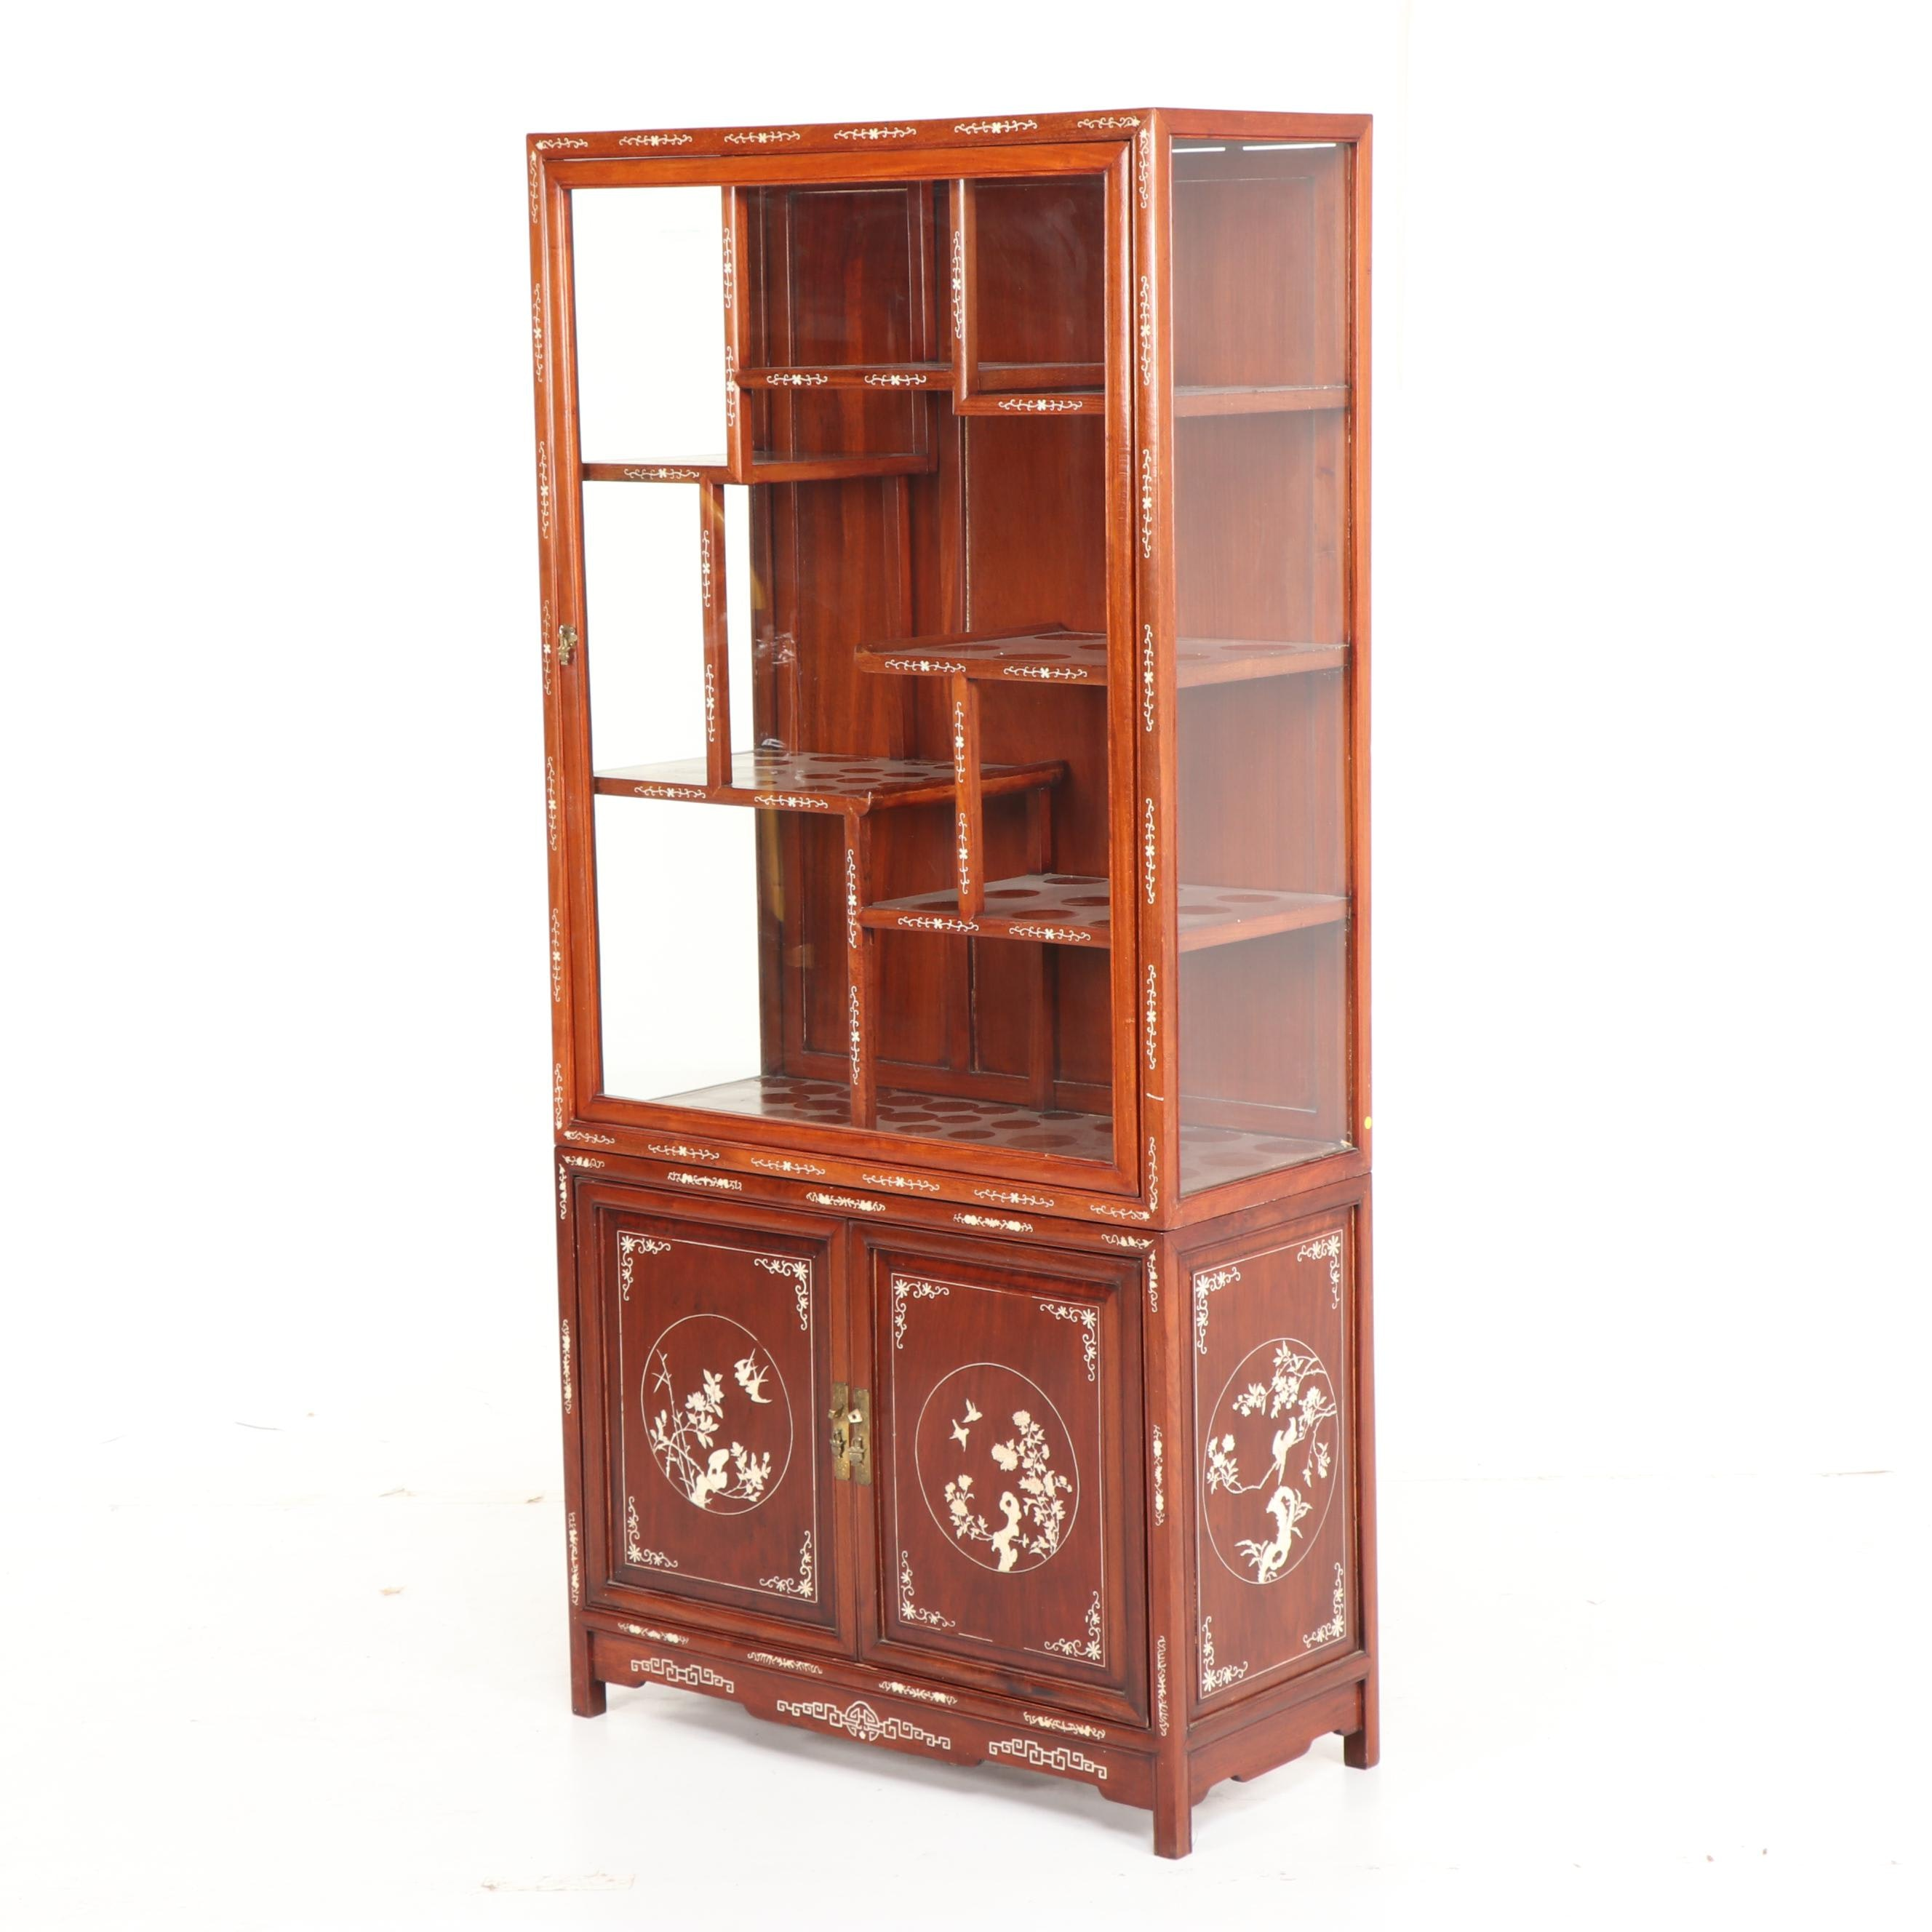 Chinese Exotic Hardwood Display Cabinet with Bone Inlay, Mid-20th Century